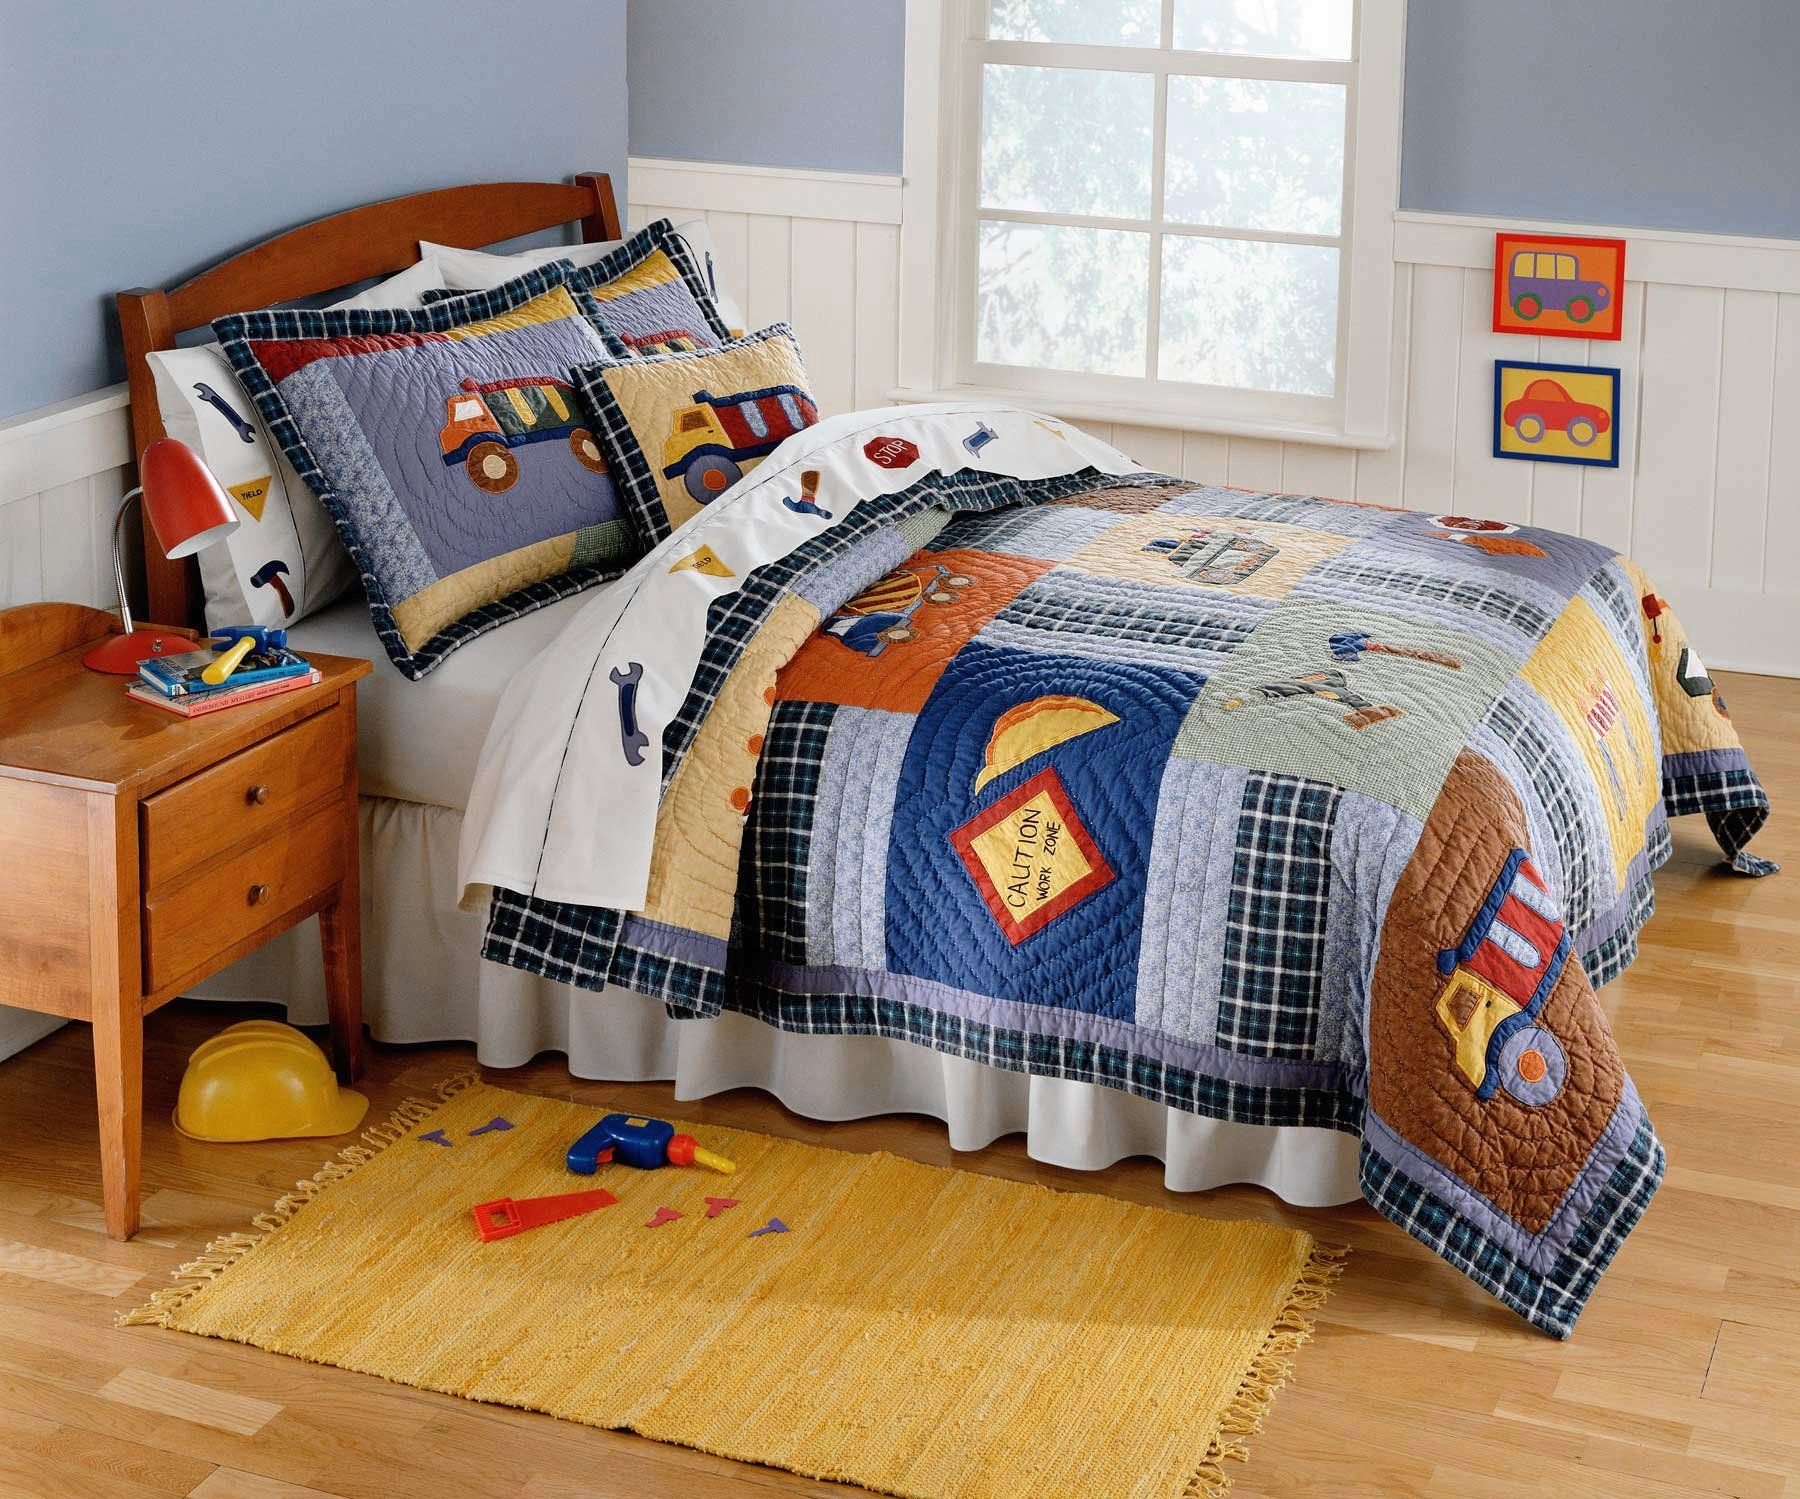 Construction Time Bedding for Boys Twin Size 2pc Quilt Set Kids